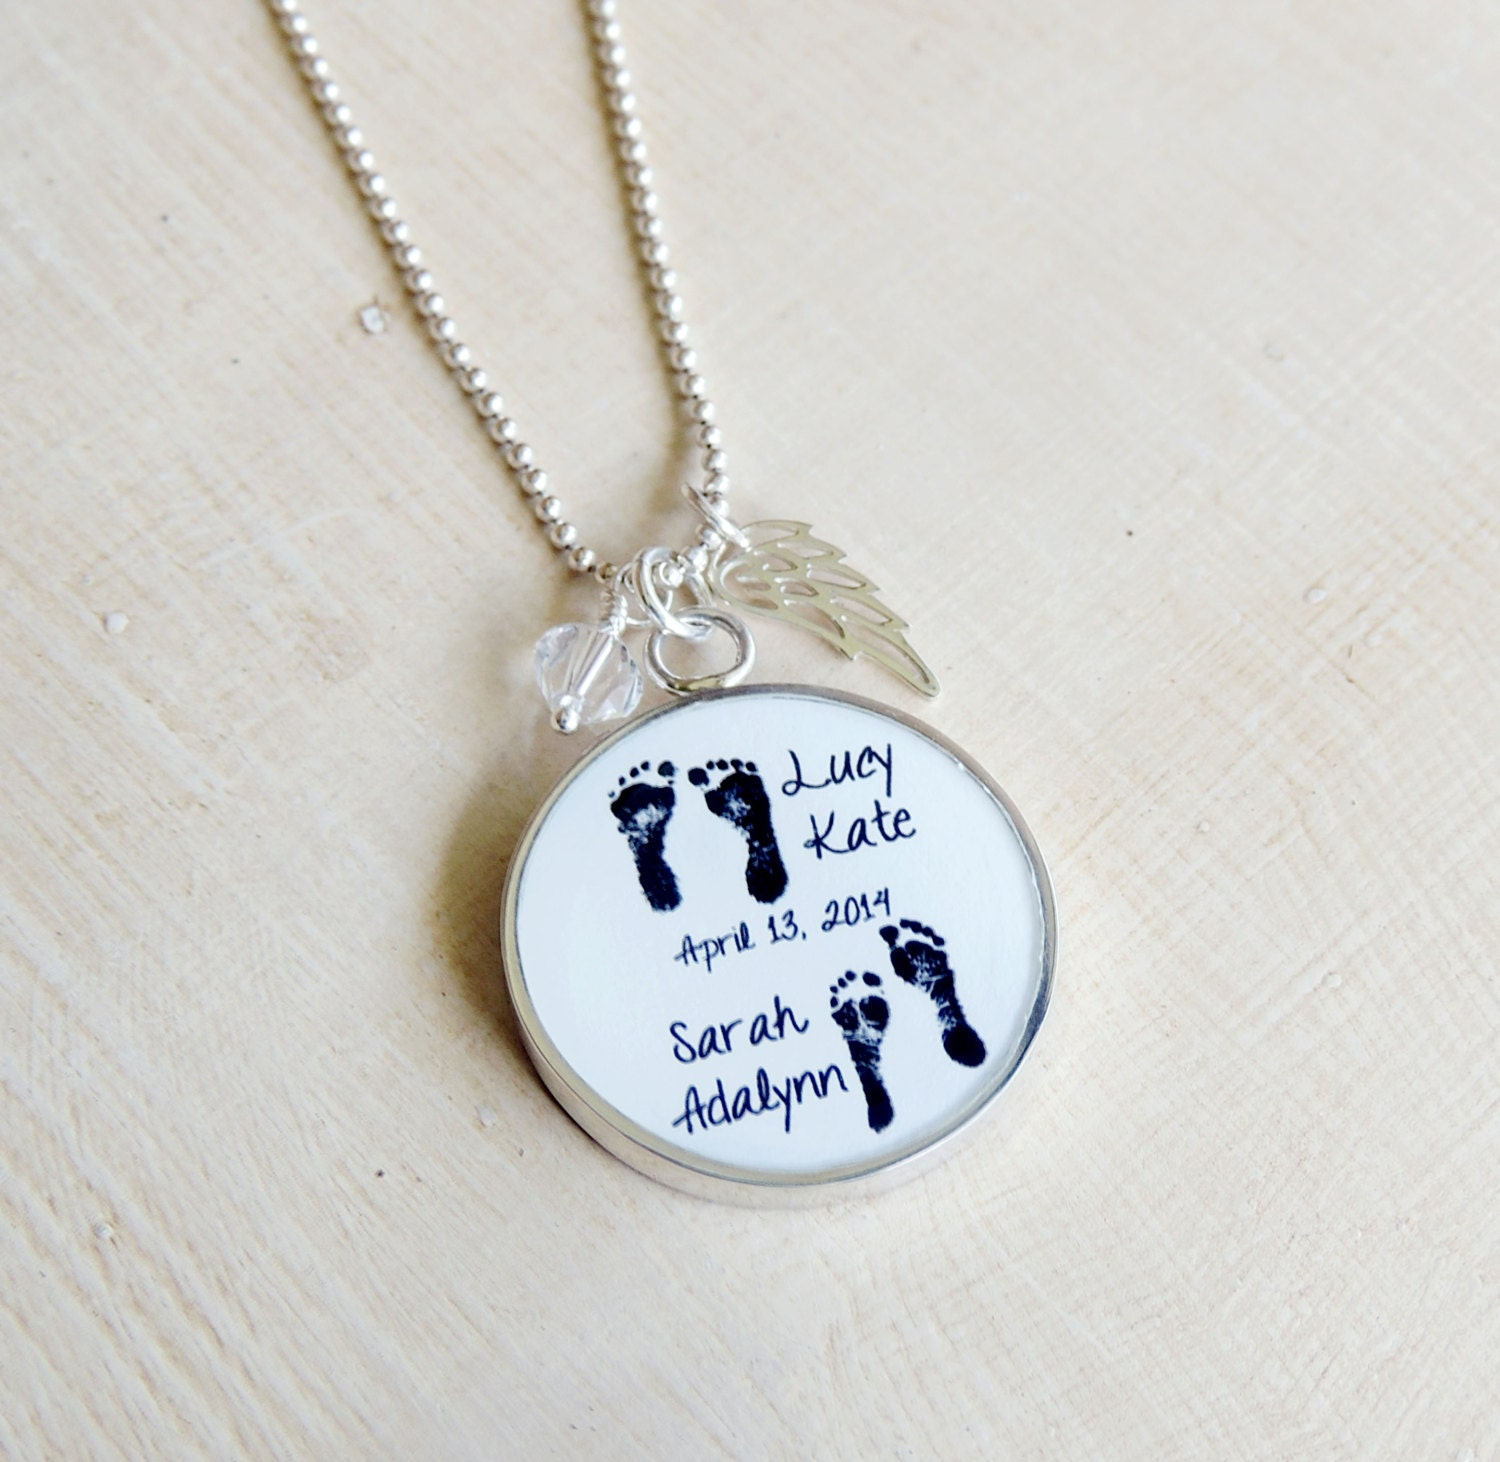 ashes ideas best locket miracle memorial design uk canada urn strikingly pet hair necklace photo